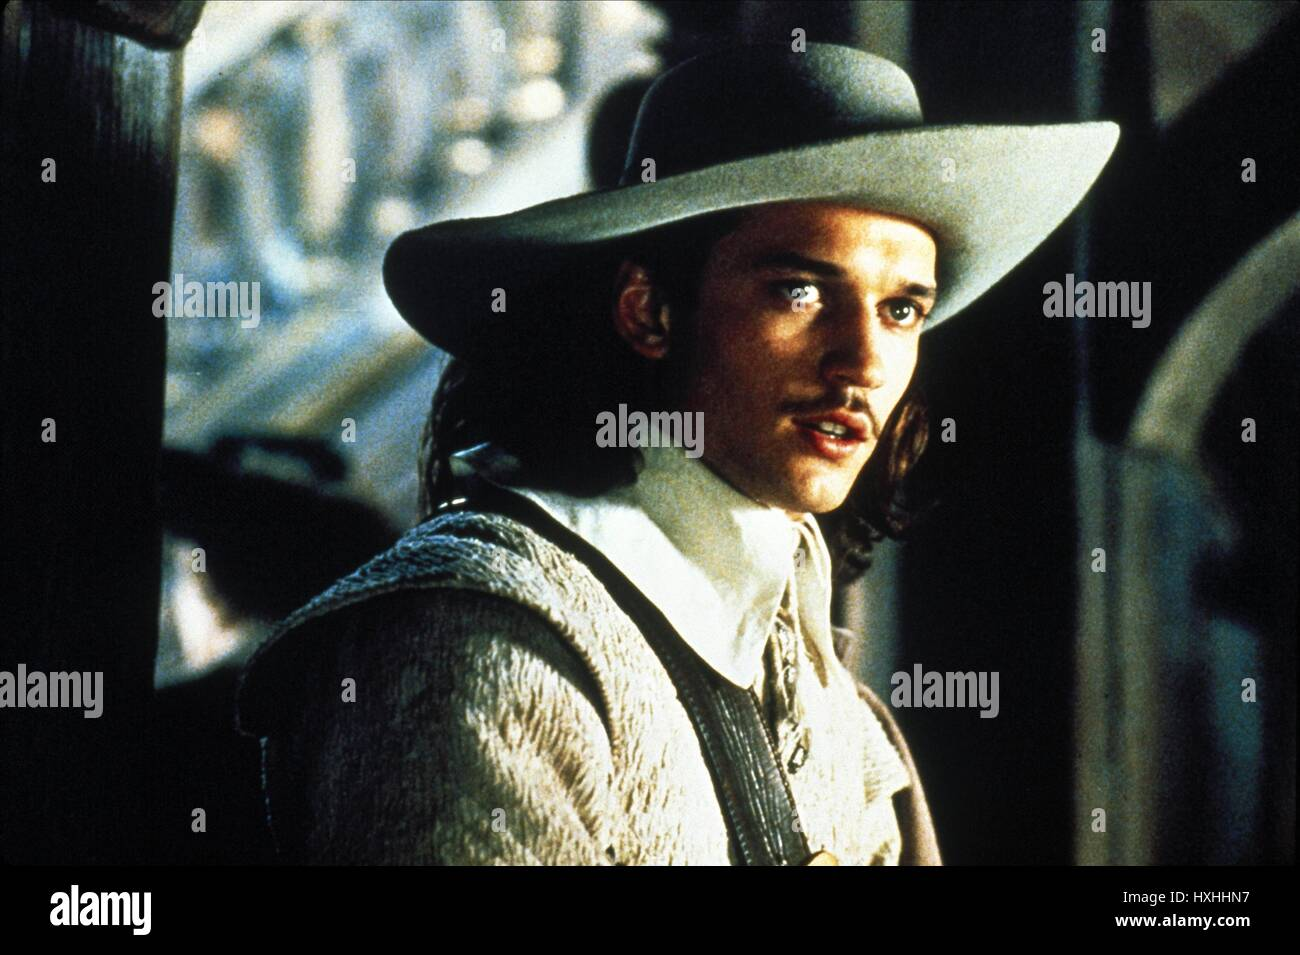 Vincent Perez Cyrano De Bergerac Stock Photo